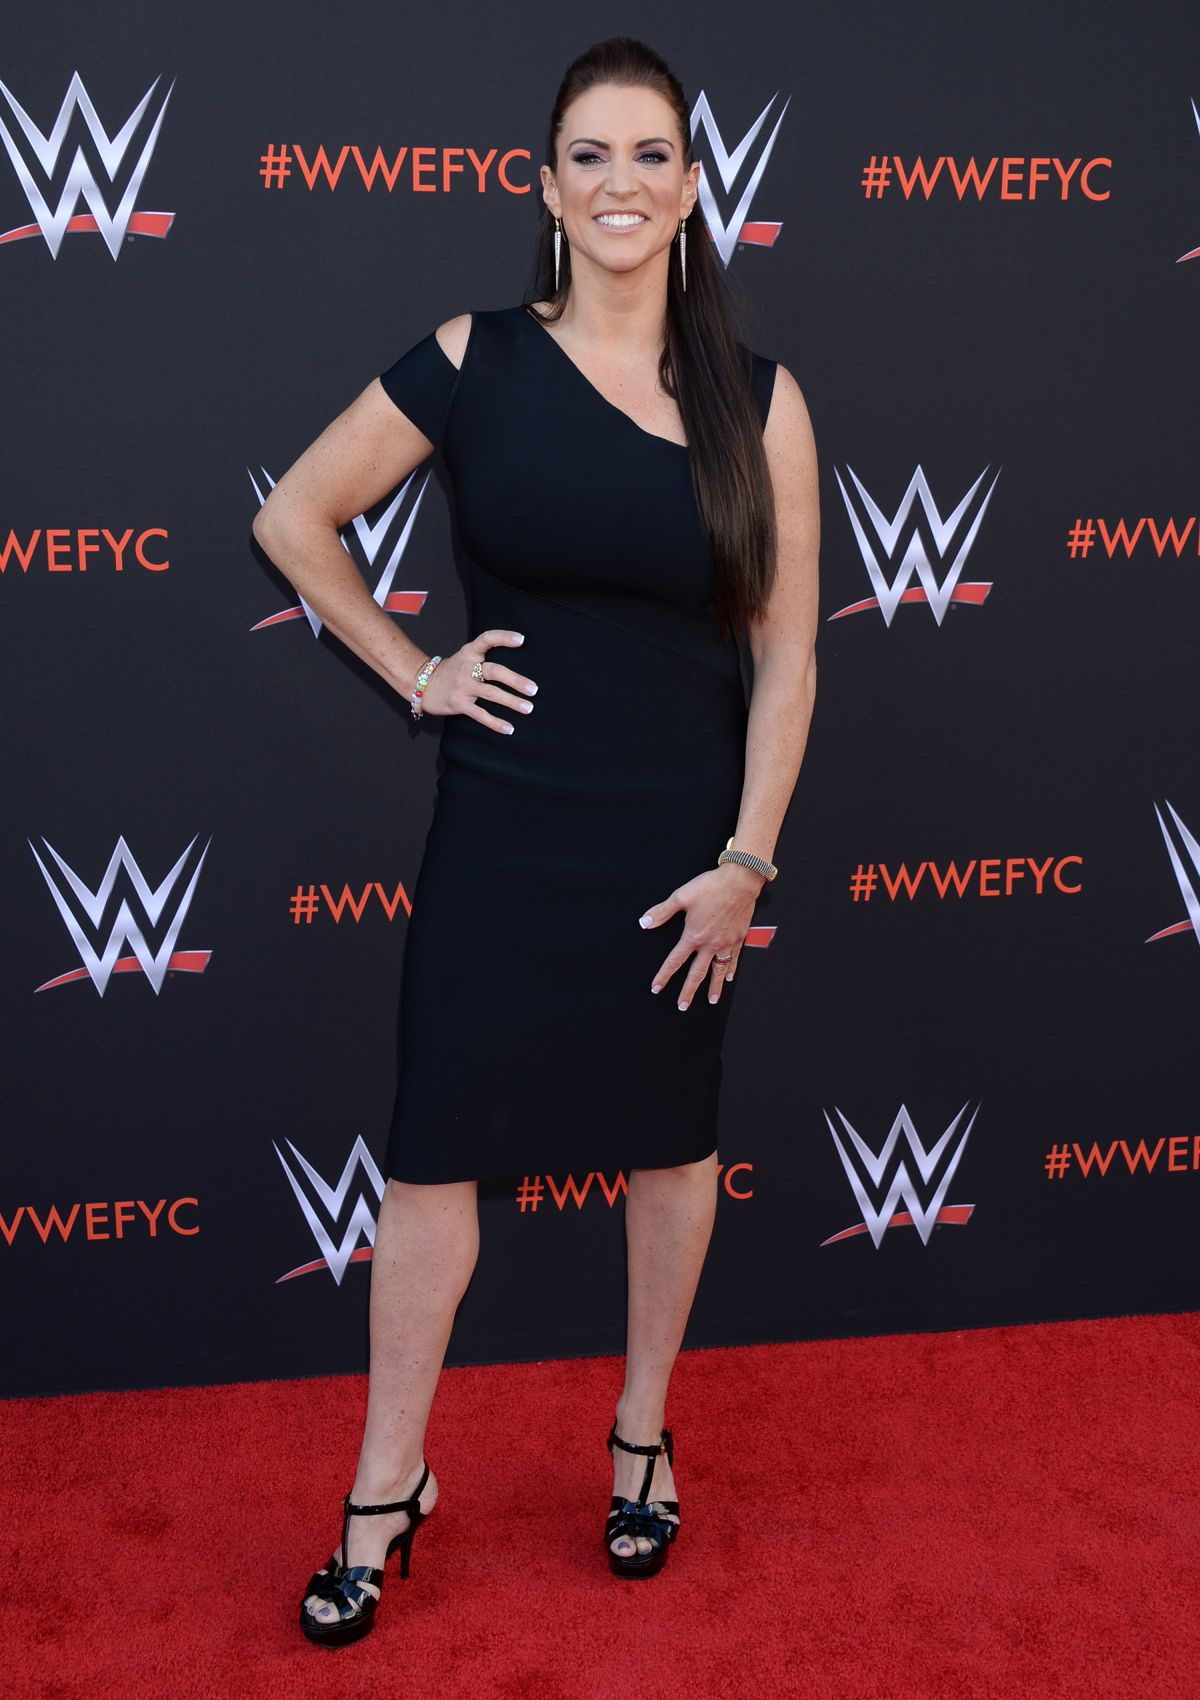 Stephanie Mcmahon in Black Dress